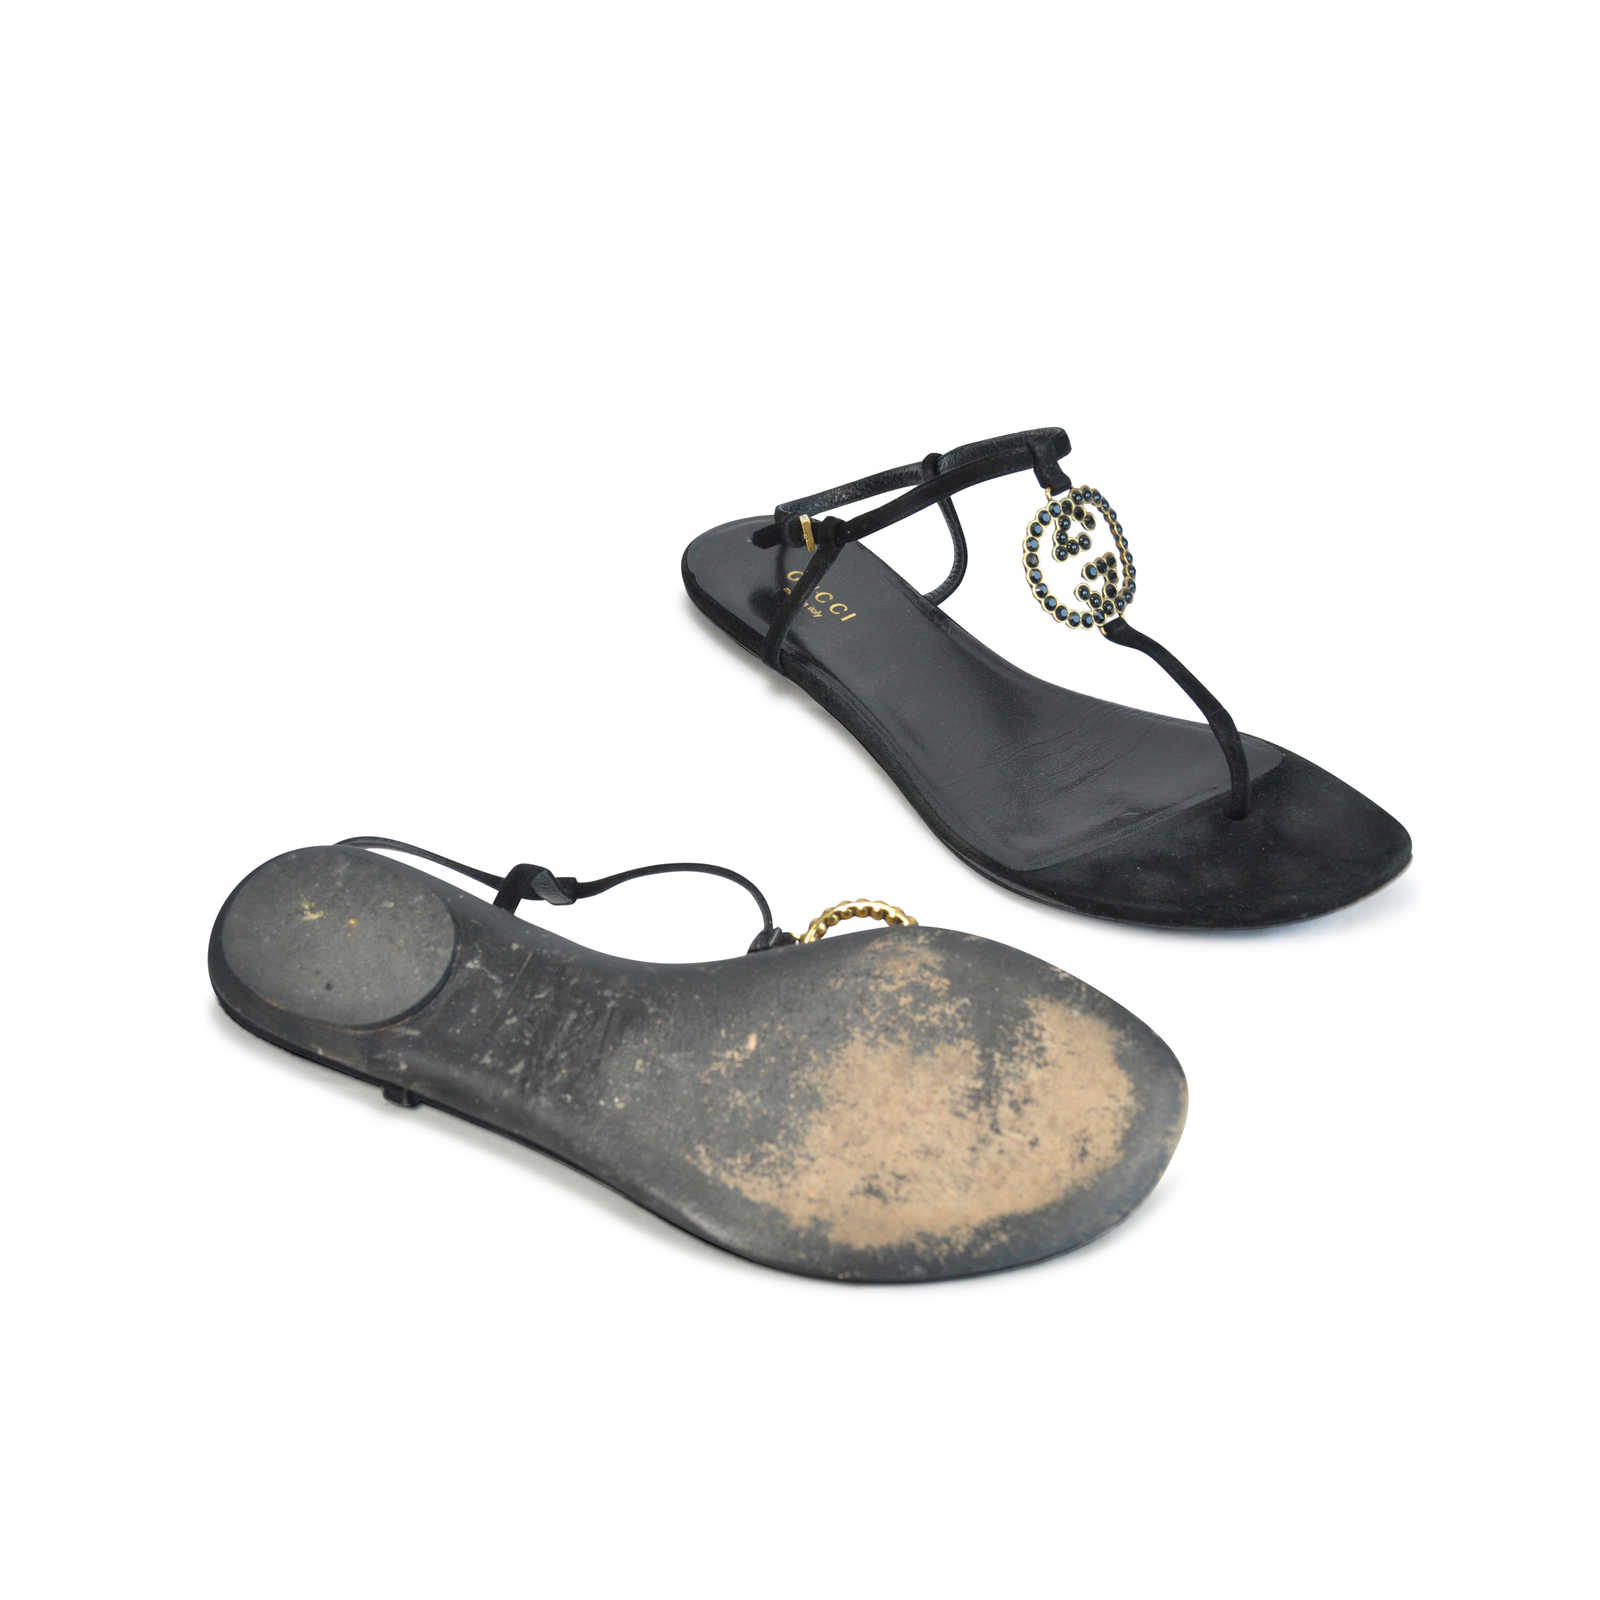 98e90b12b7c6 ... Authentic Second Hand Gucci Jewelled Thong Sandals (PSS-124-00006) -  Thumbnail ...